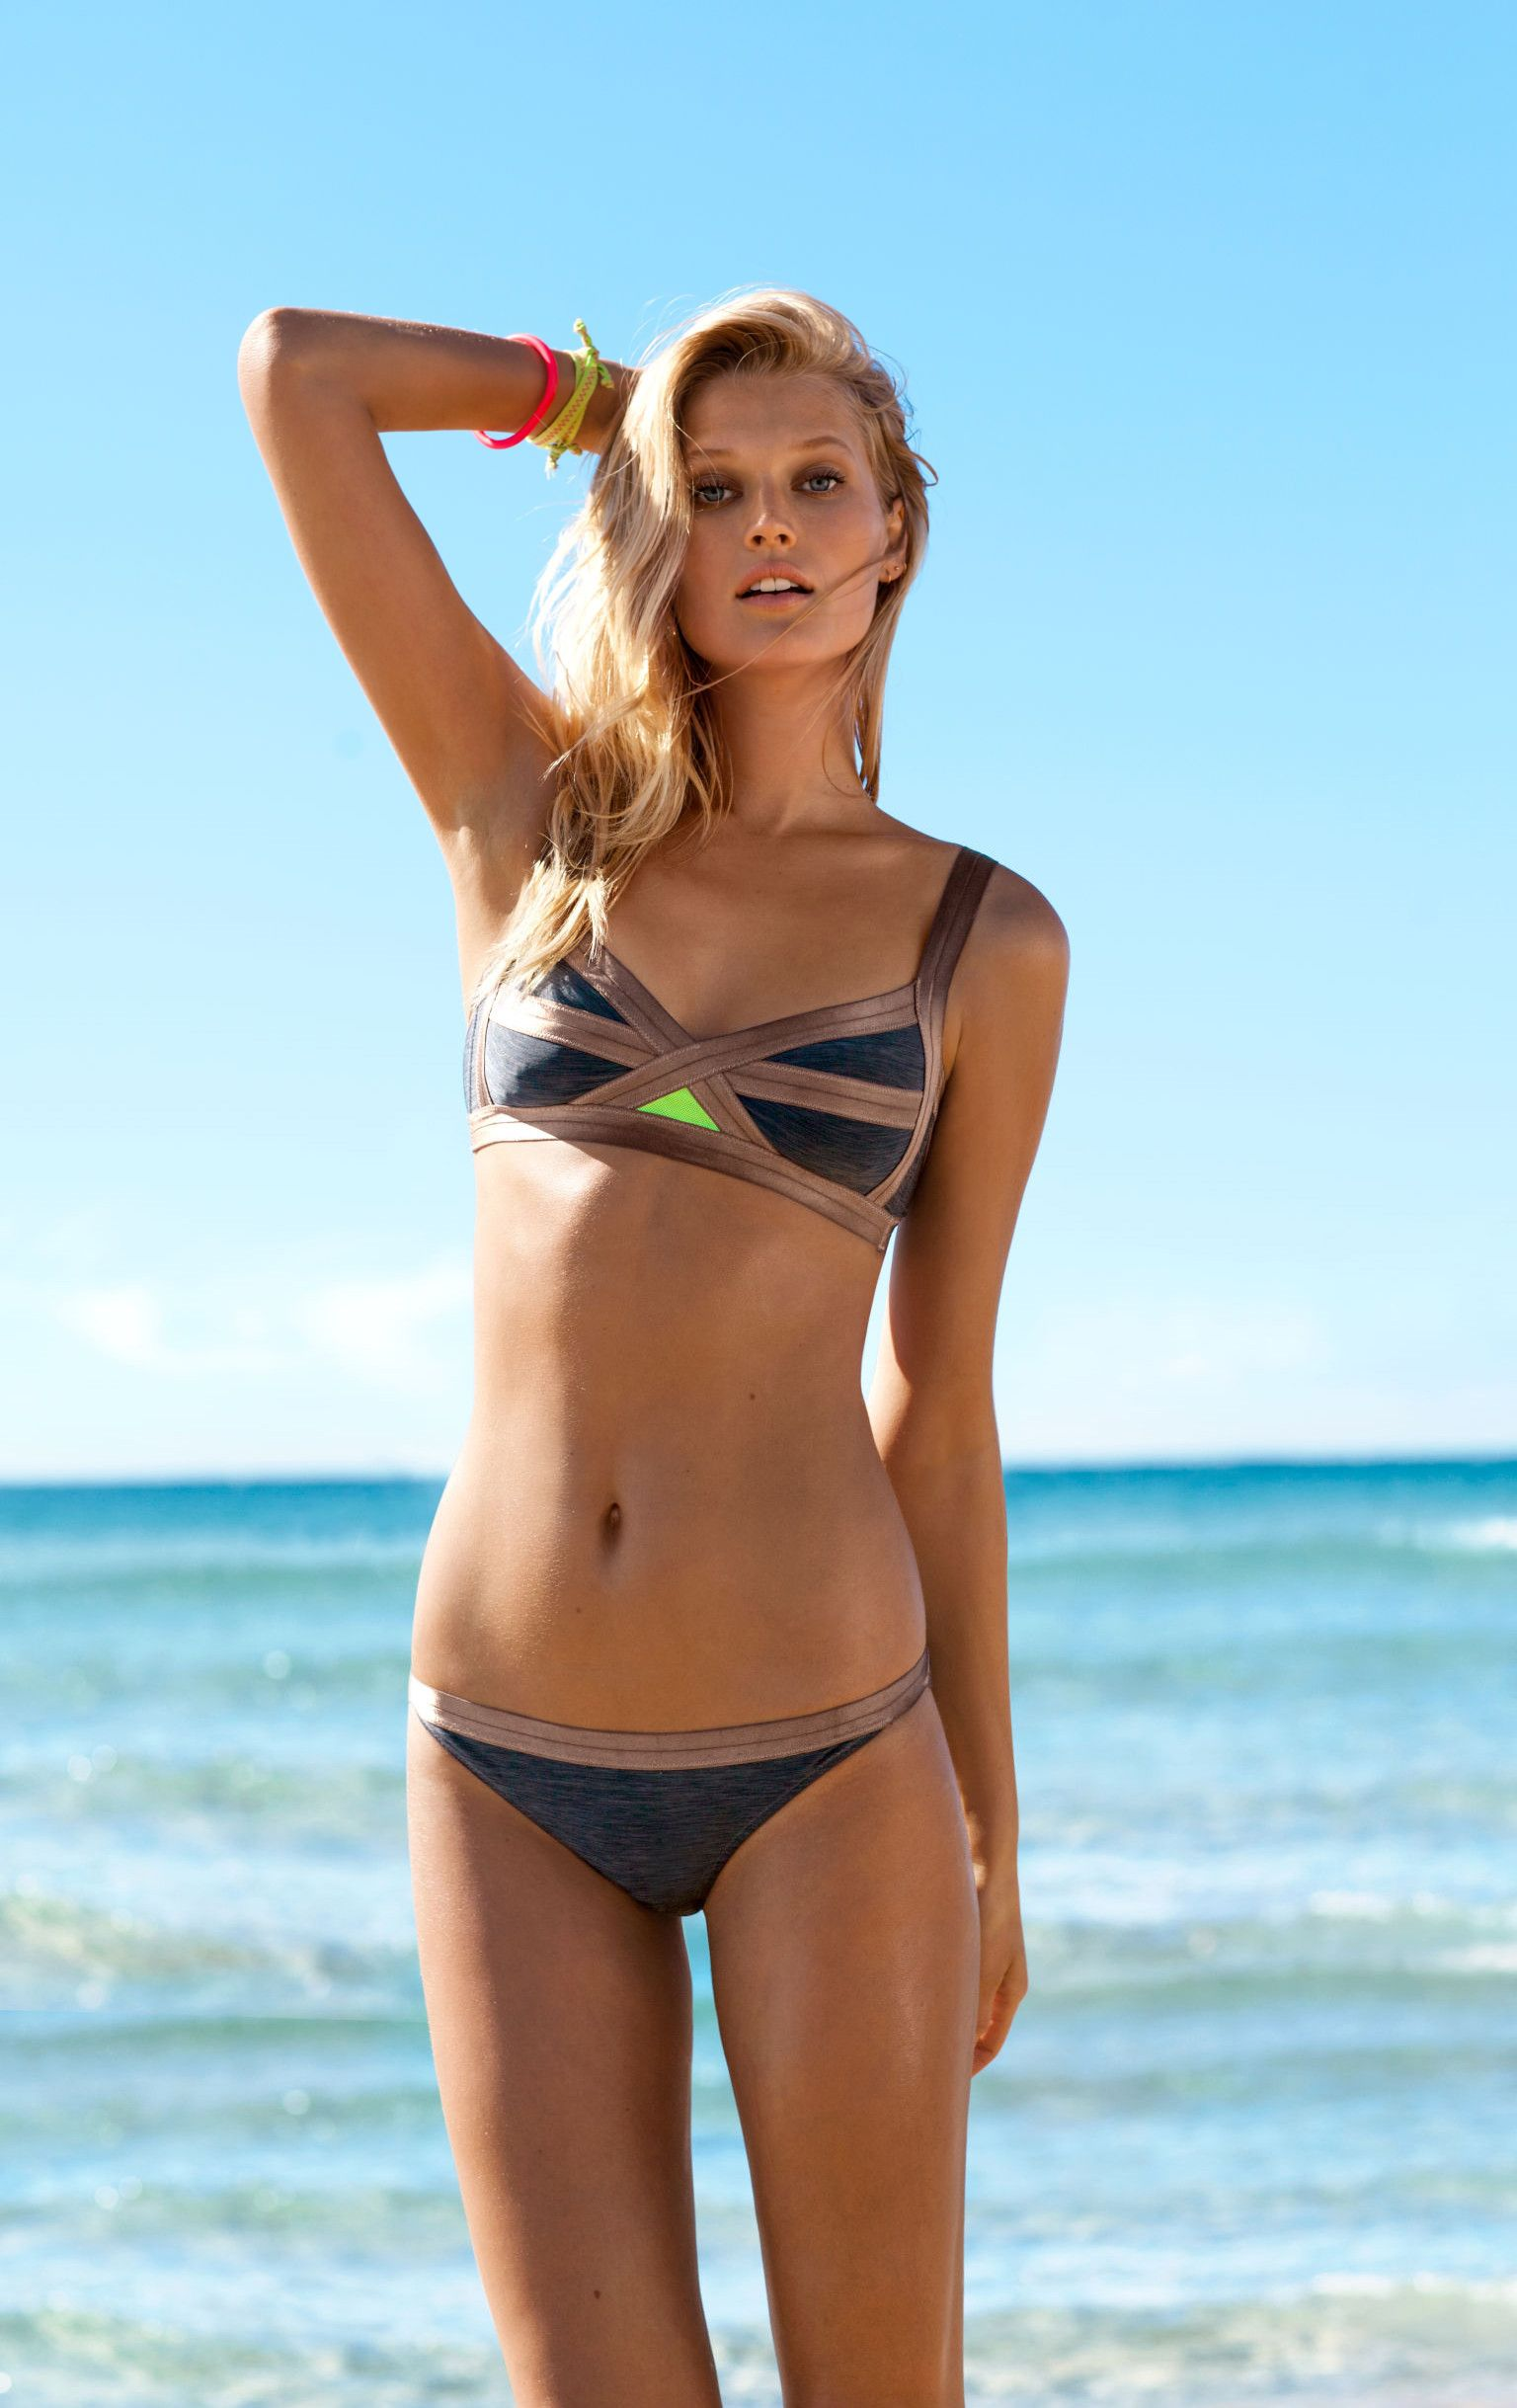 73a4951235 Look for top quality Swimwear  Buy Swimwear from Fobuy enjoying great price  and satisfied customer service. Toni Garrn - Imgur